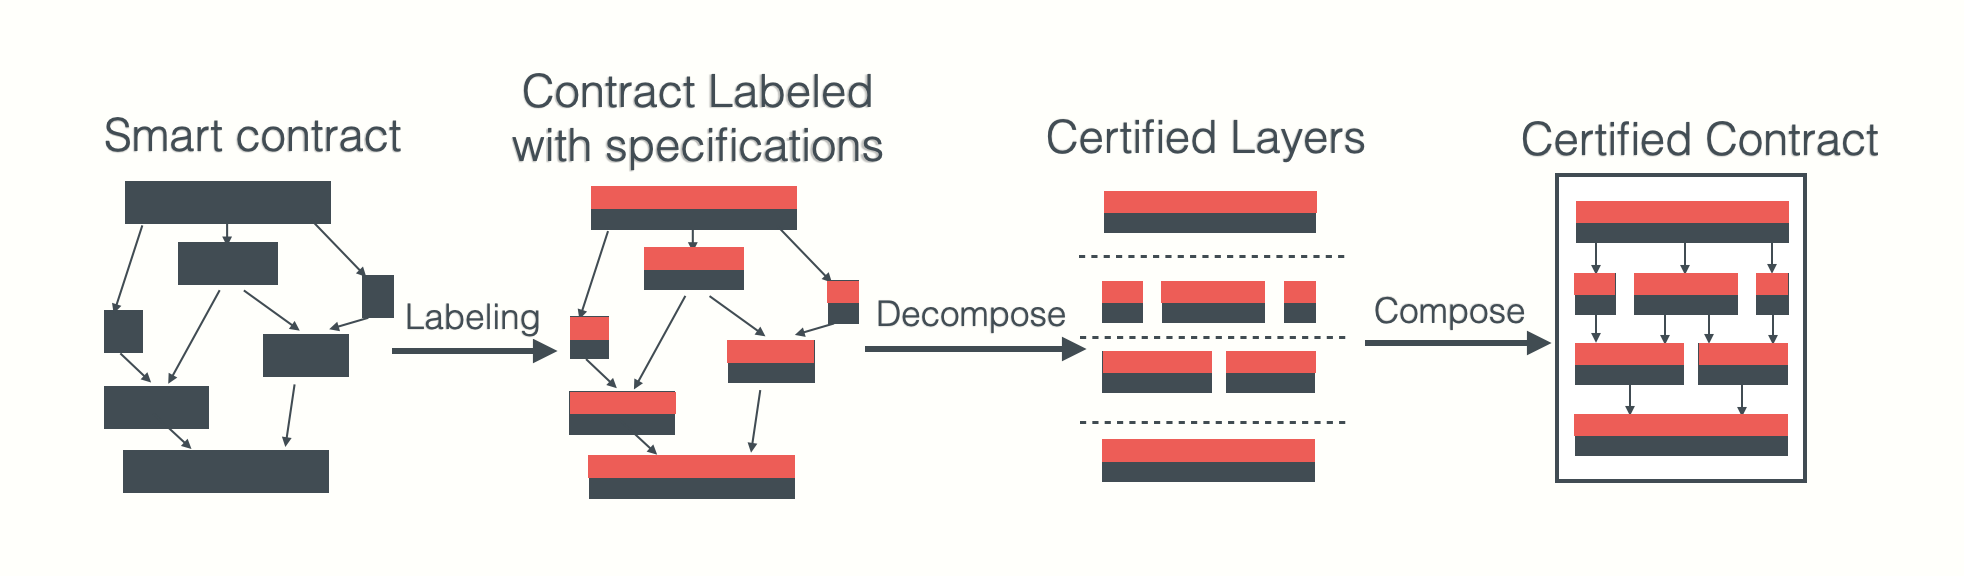 CertiK formal verification engine smart labeling process